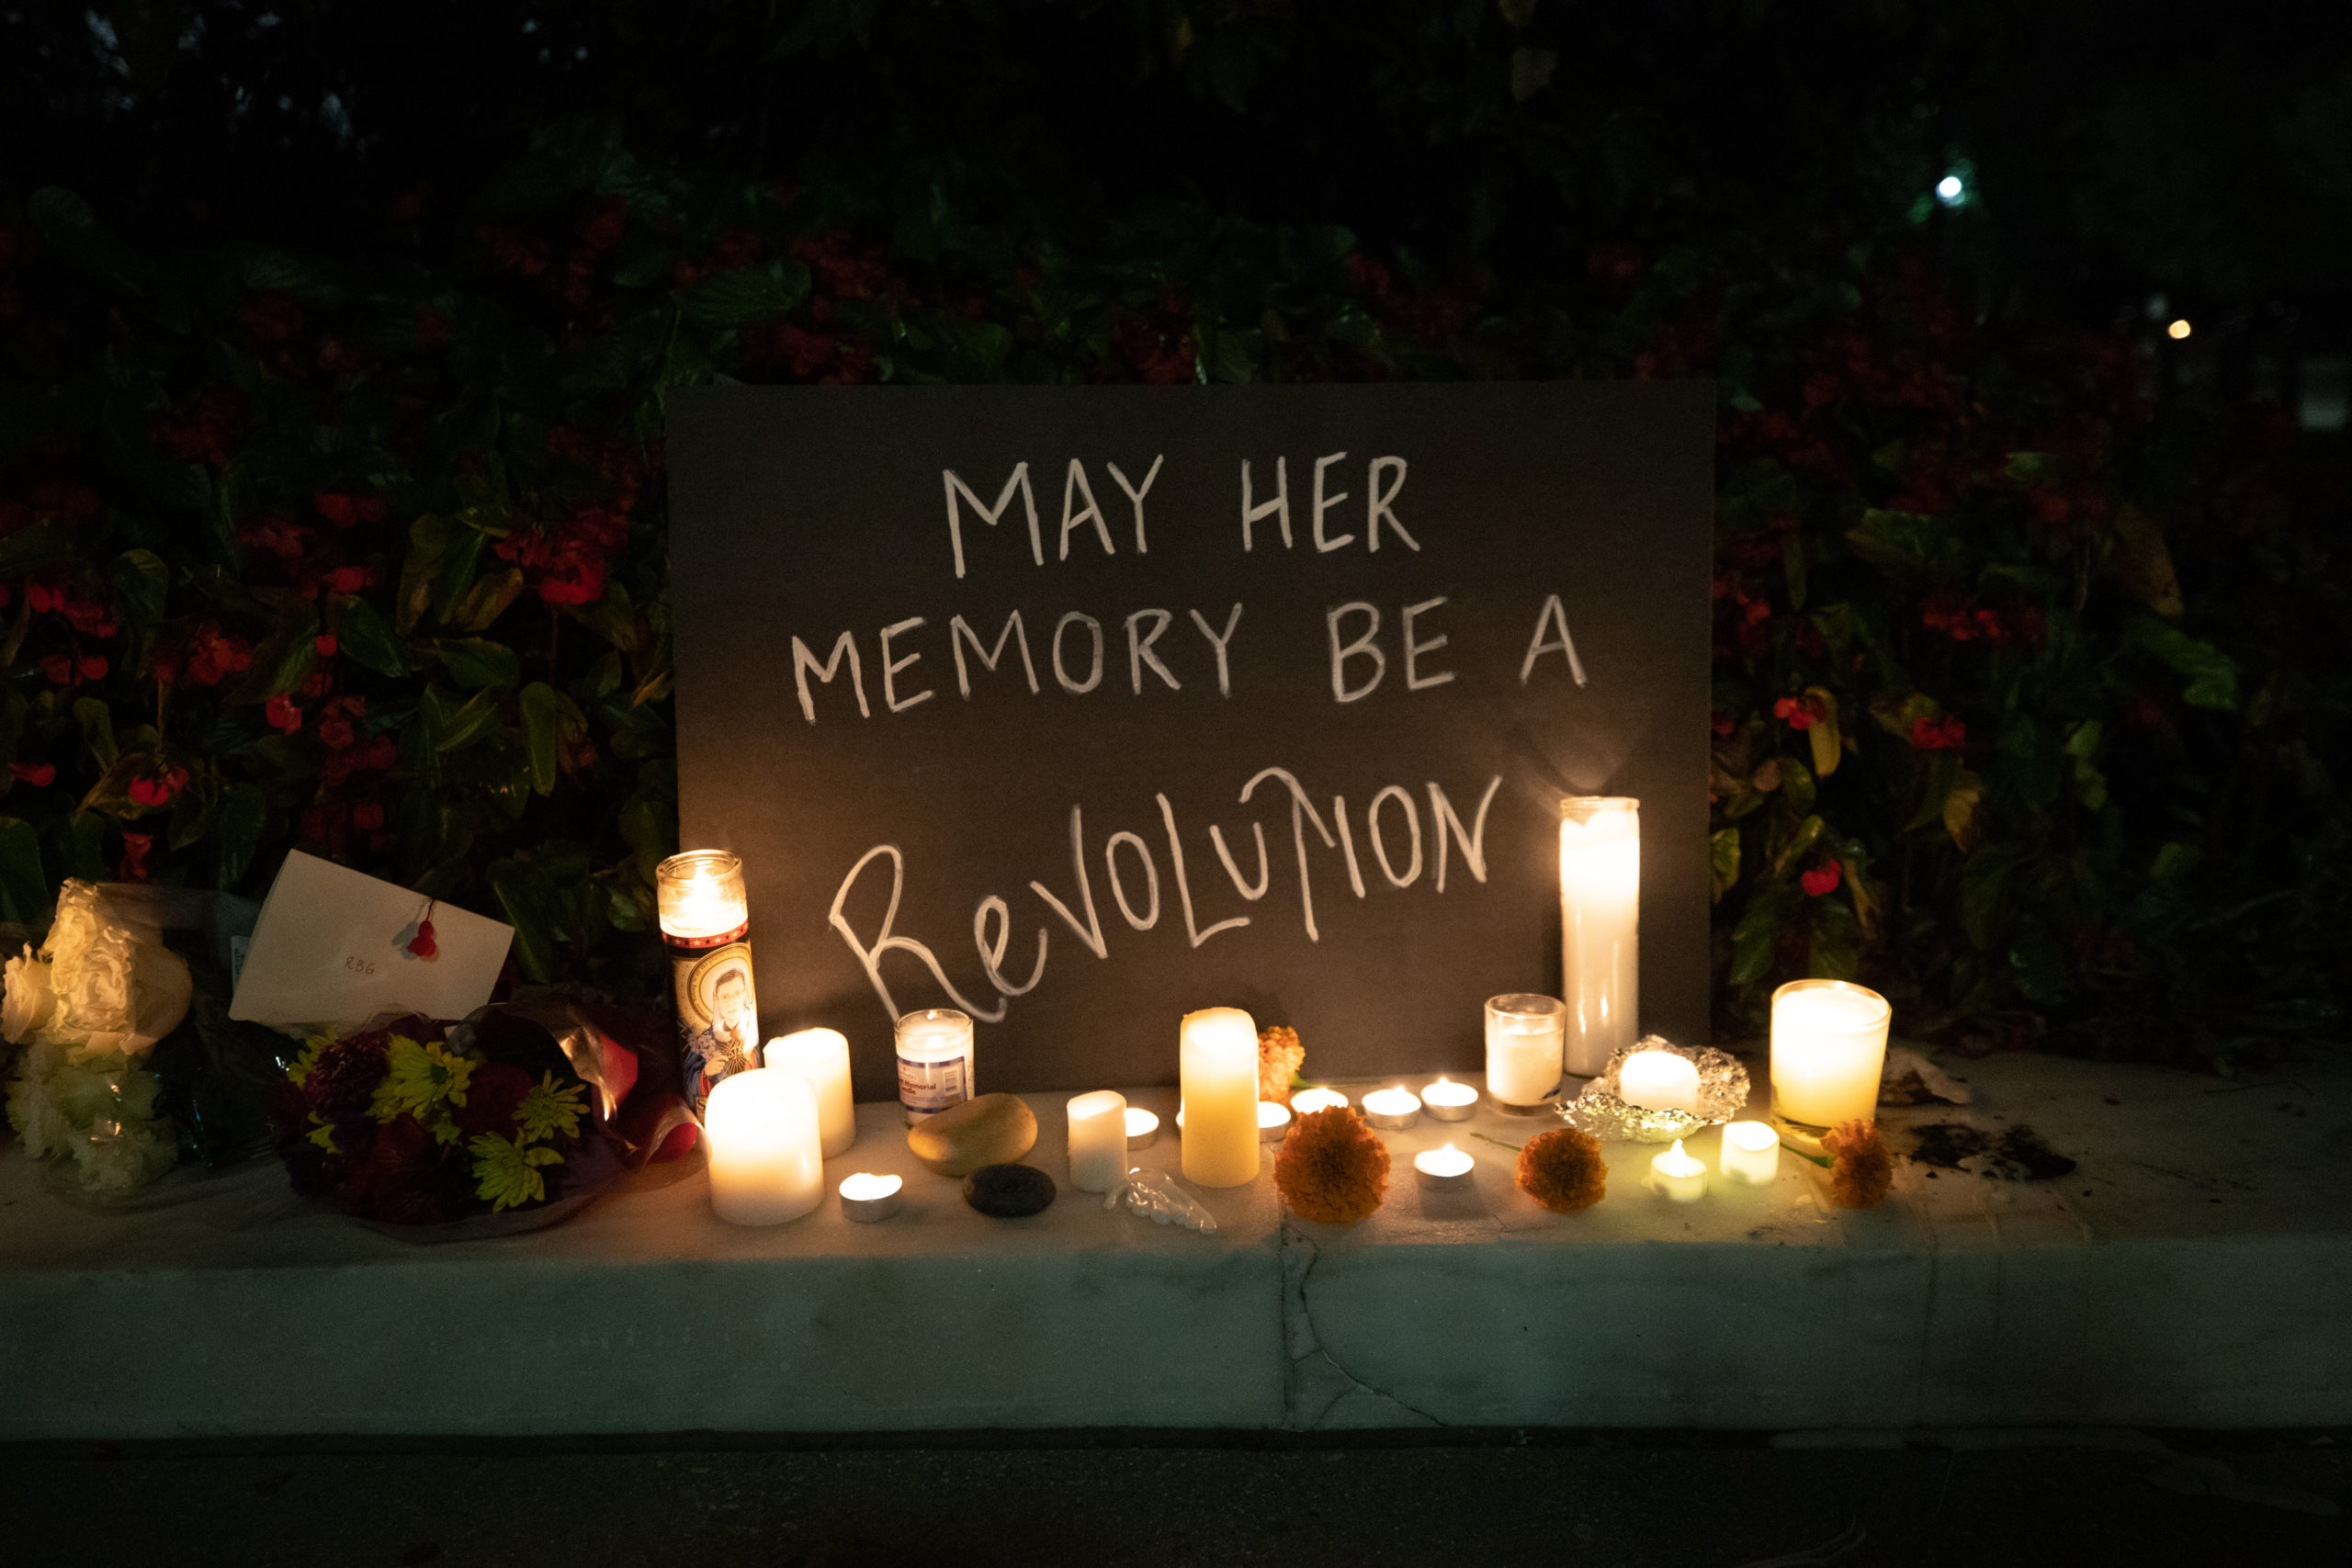 """People placed hundreds of signs reading """"may her memory be a revolution,"""" """"when there are nine,"""" and """"I dissent"""" at a memorial honoring the late Justice Ruth Bader Ginsburg on Sept. 19, 2020. (Photo: Kaylee Greenlee / The DCNF)"""